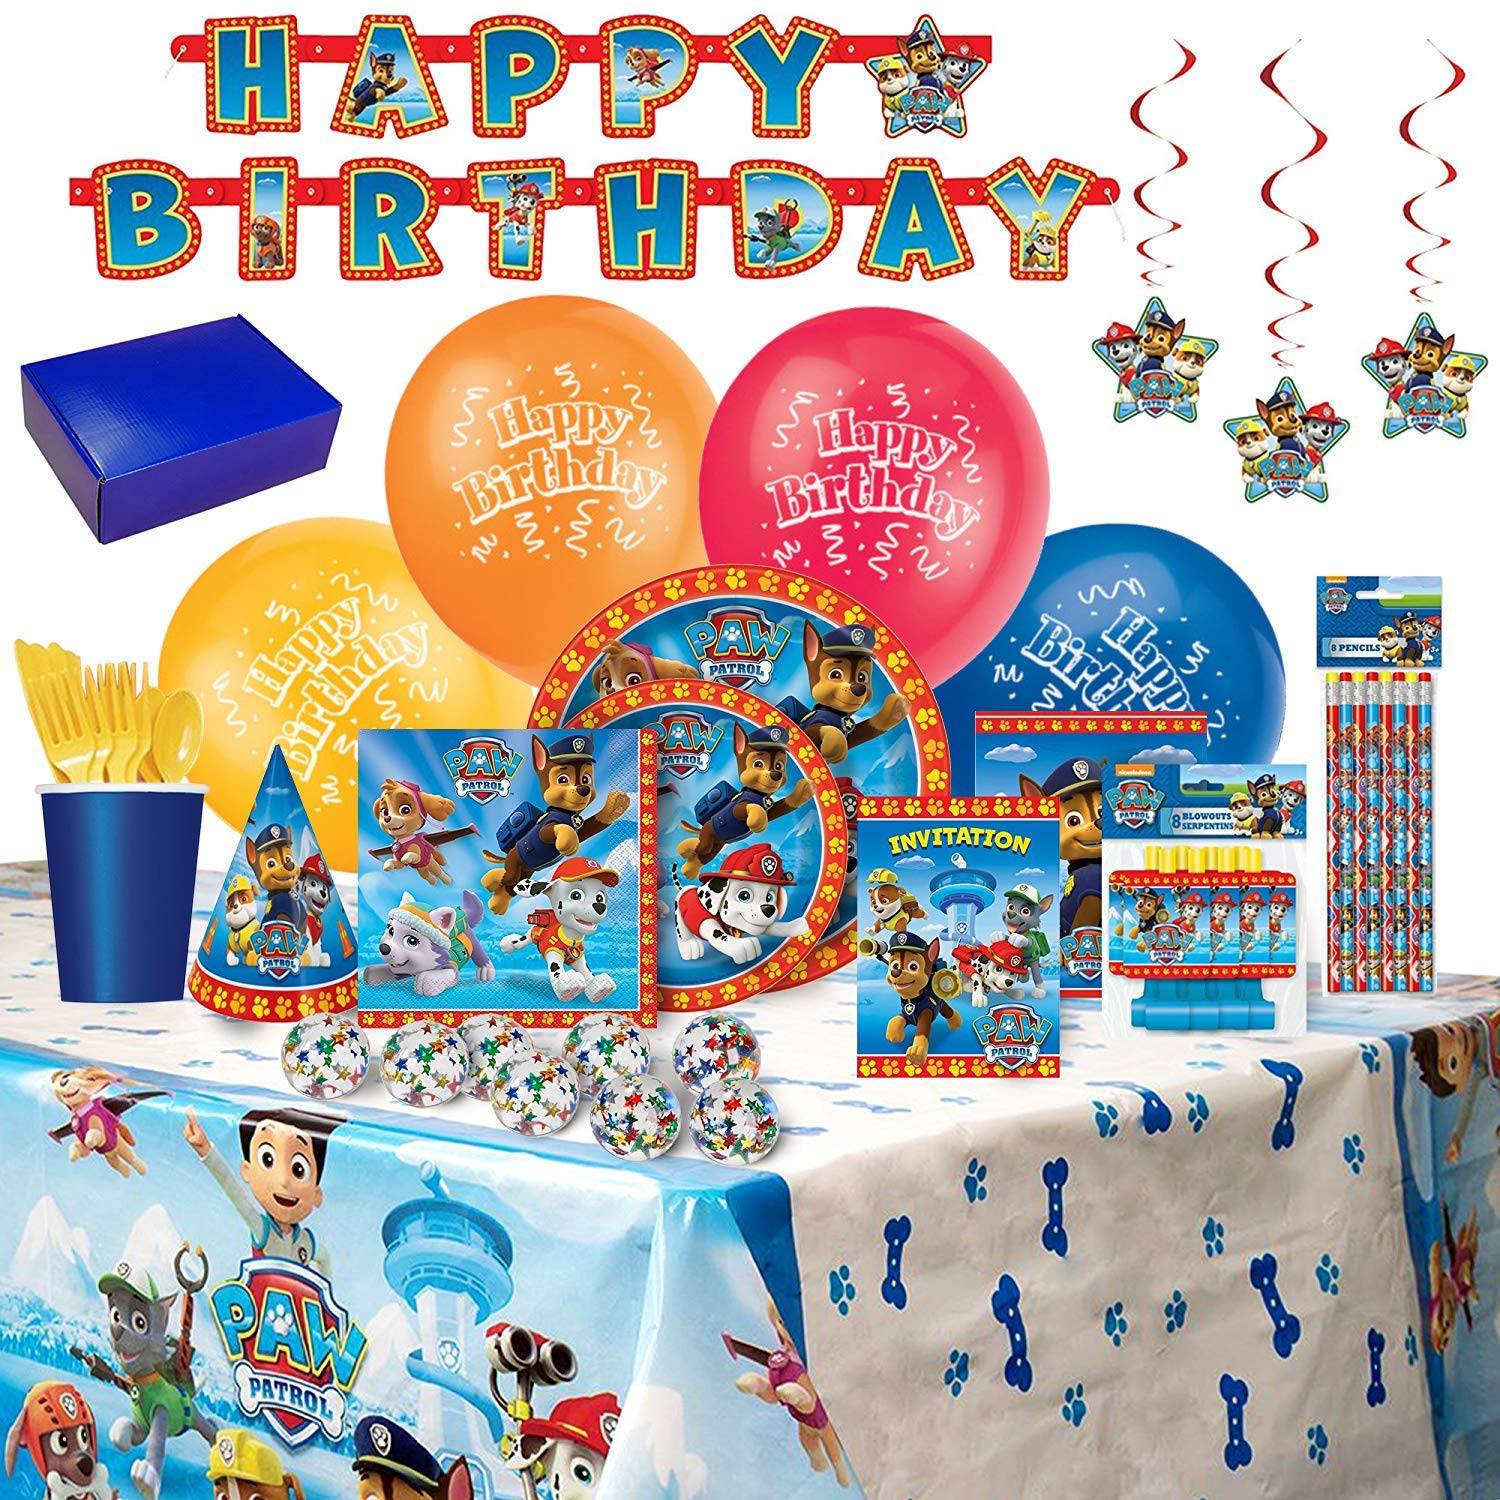 Paw Patrol Birthday Party Supplies And Decorations 8 Guests